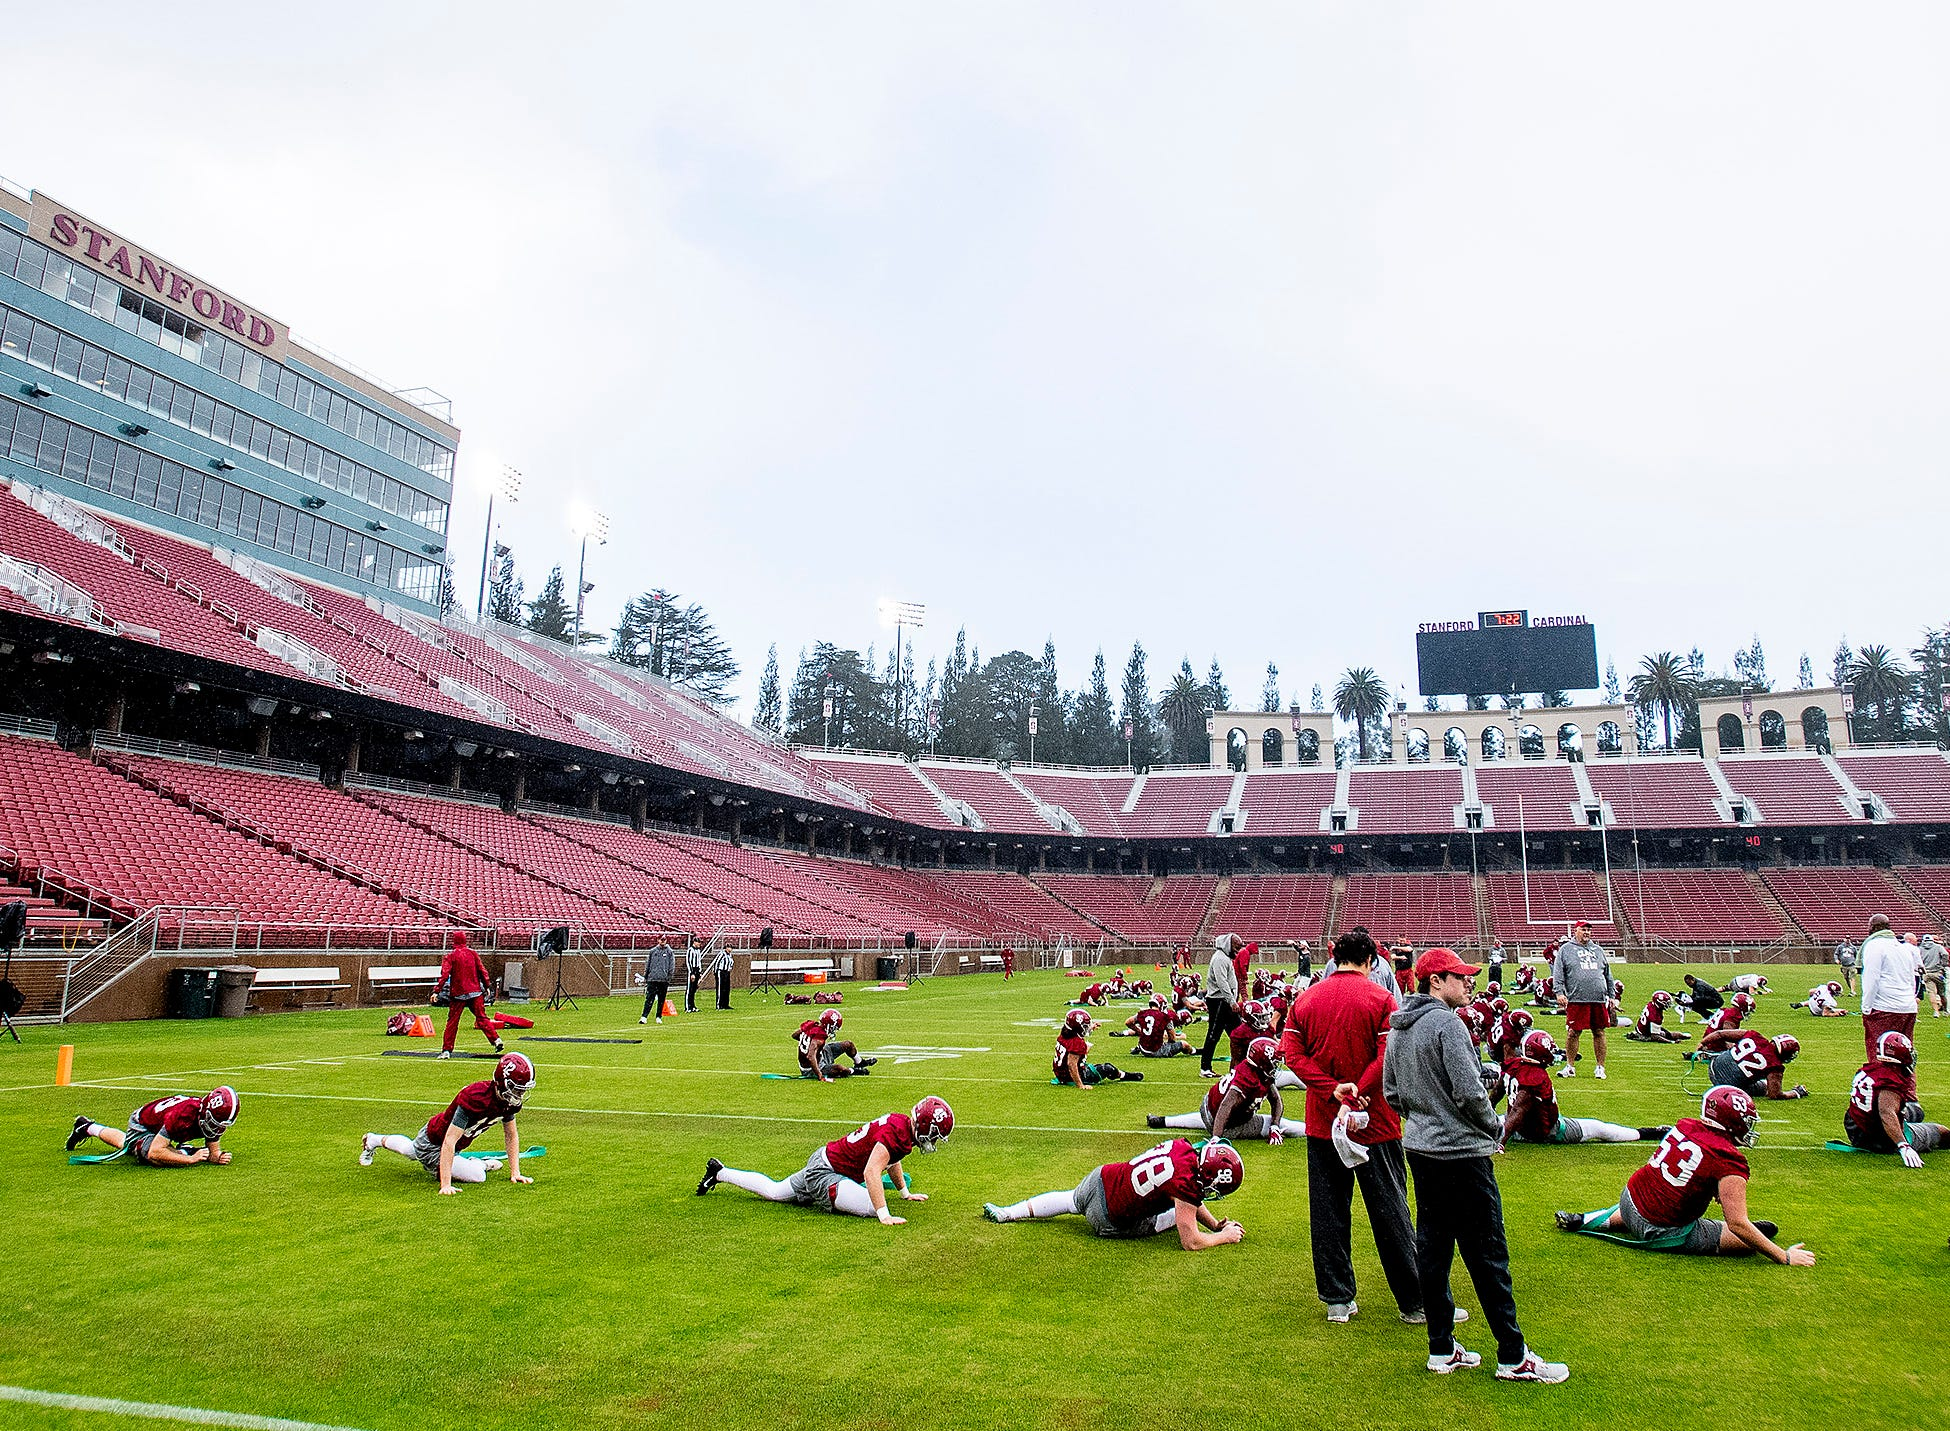 Alabama practices on the Stanford campus in Stanford, Ca., on Saturday January 5, 2019.